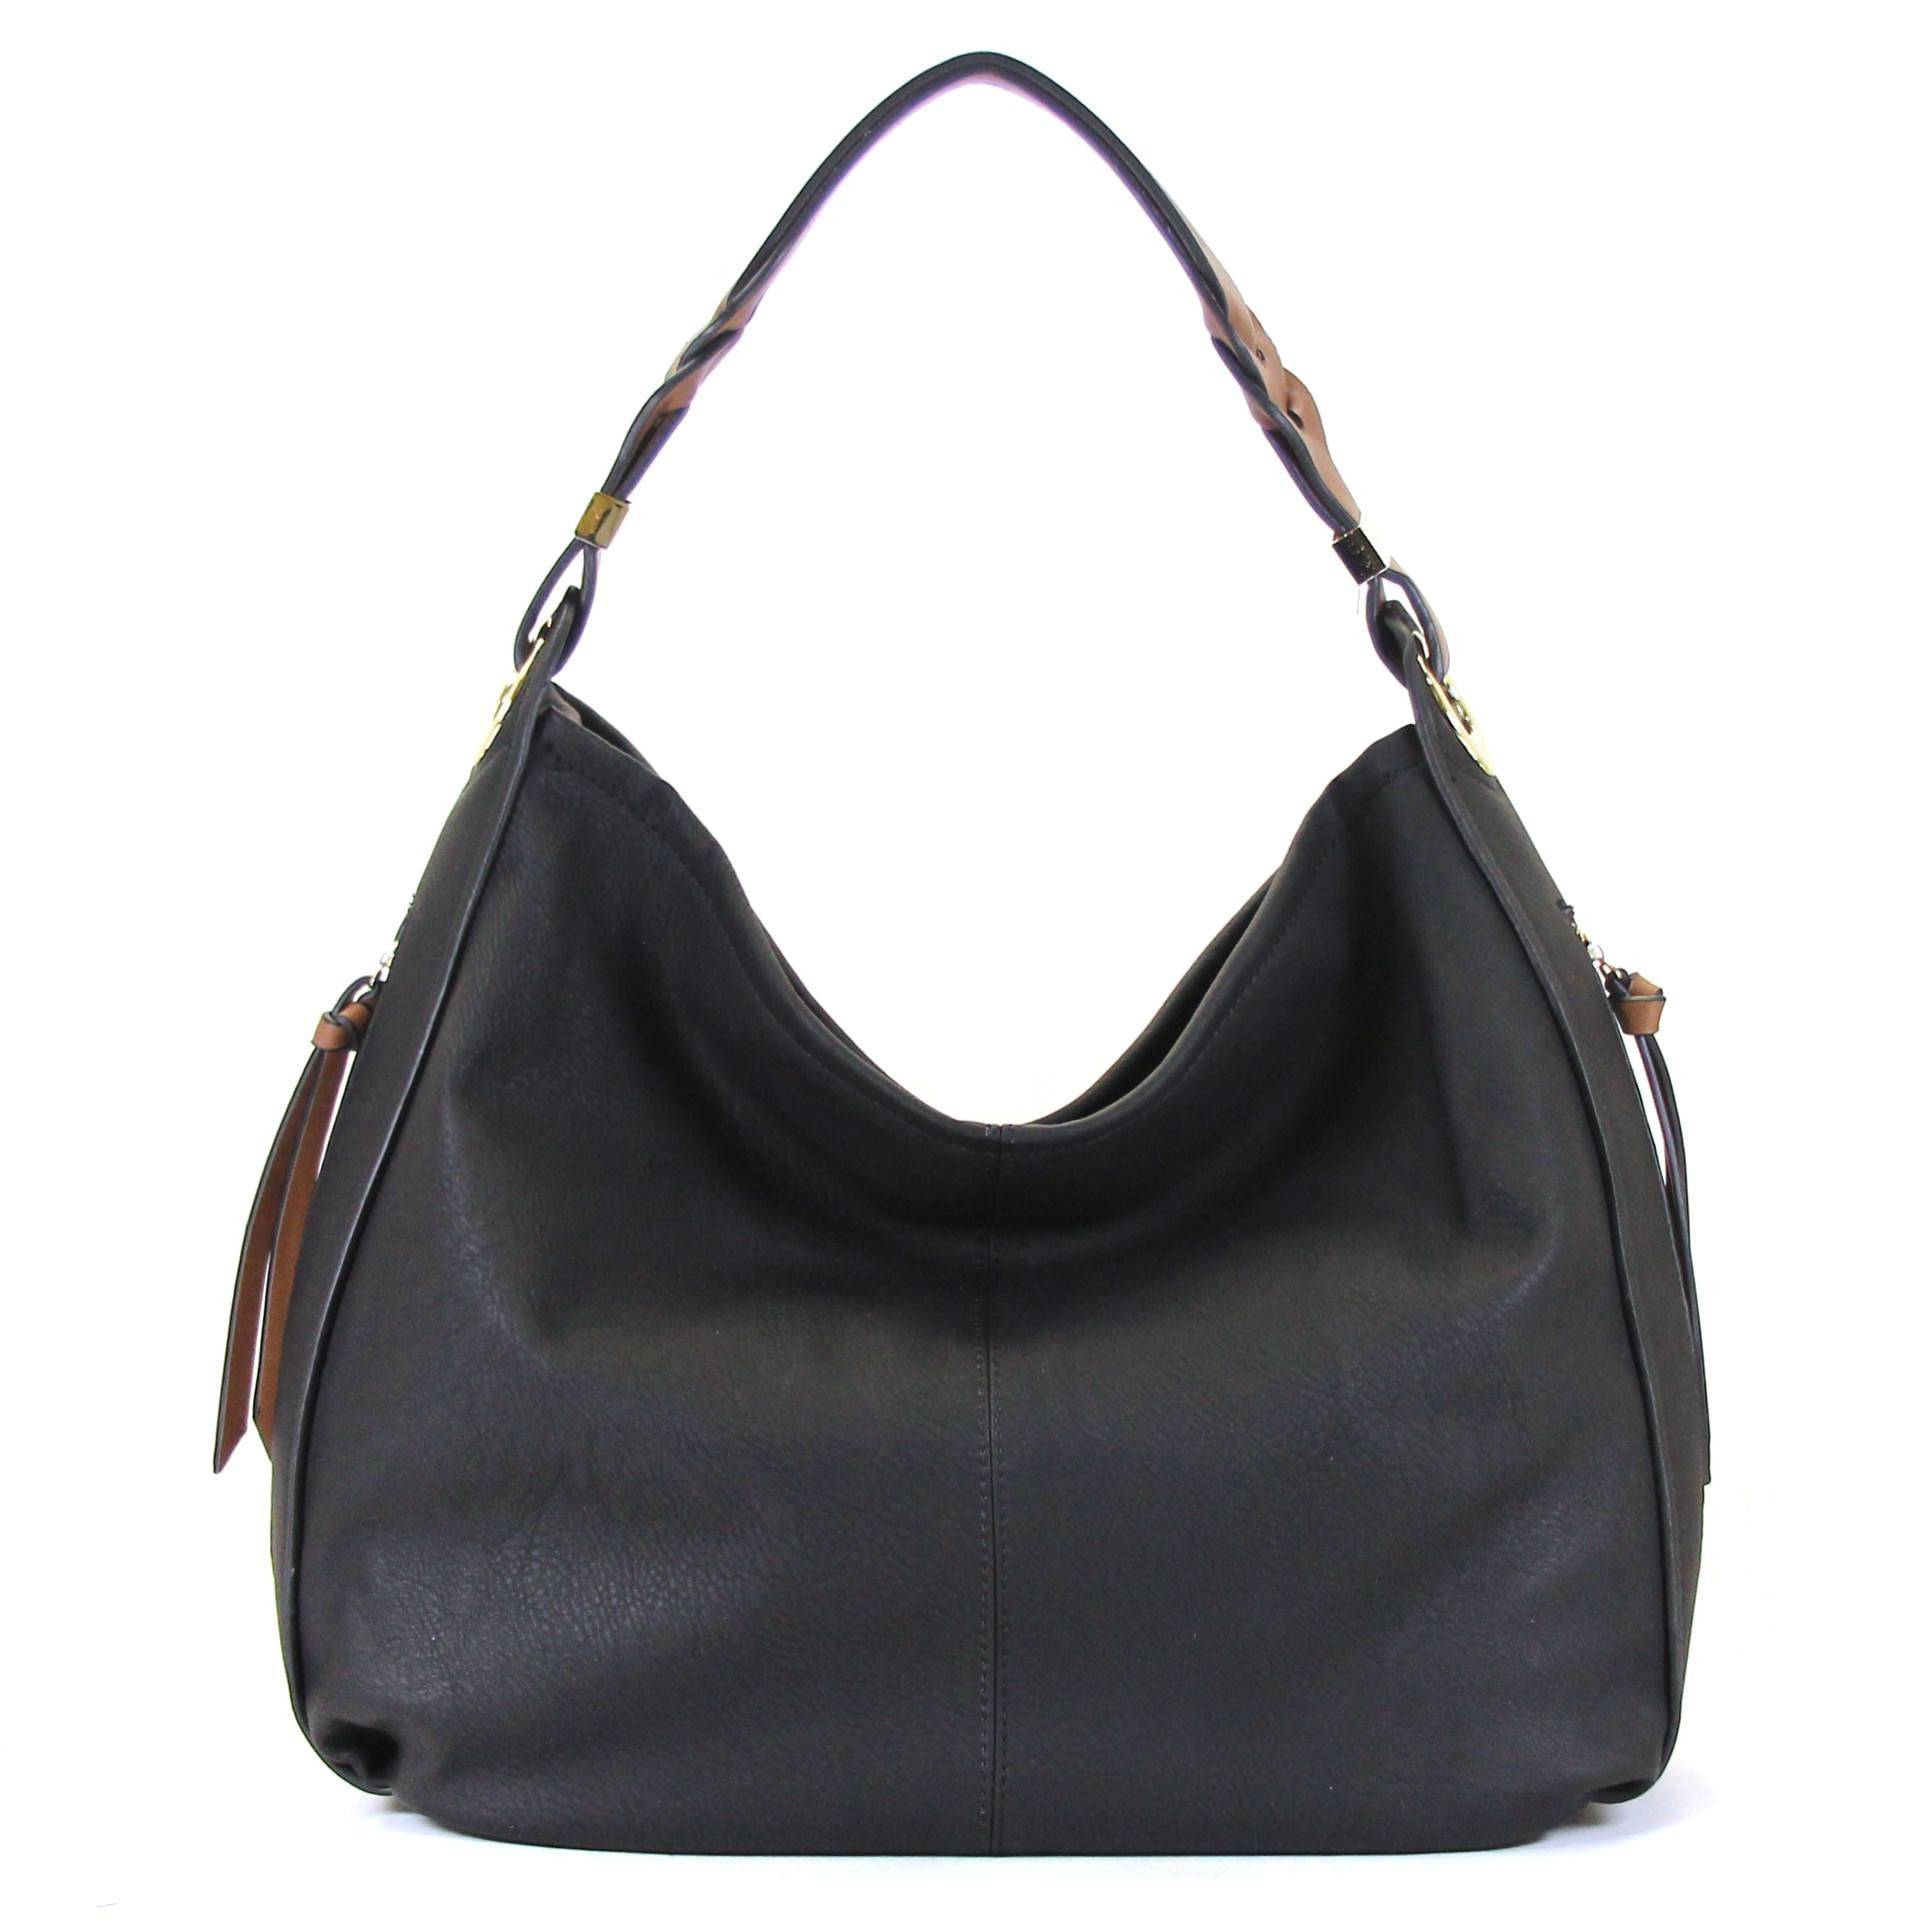 Tote, Shoulder Bag - Robert Matthew Jocelyn Shoulder Bag - Black